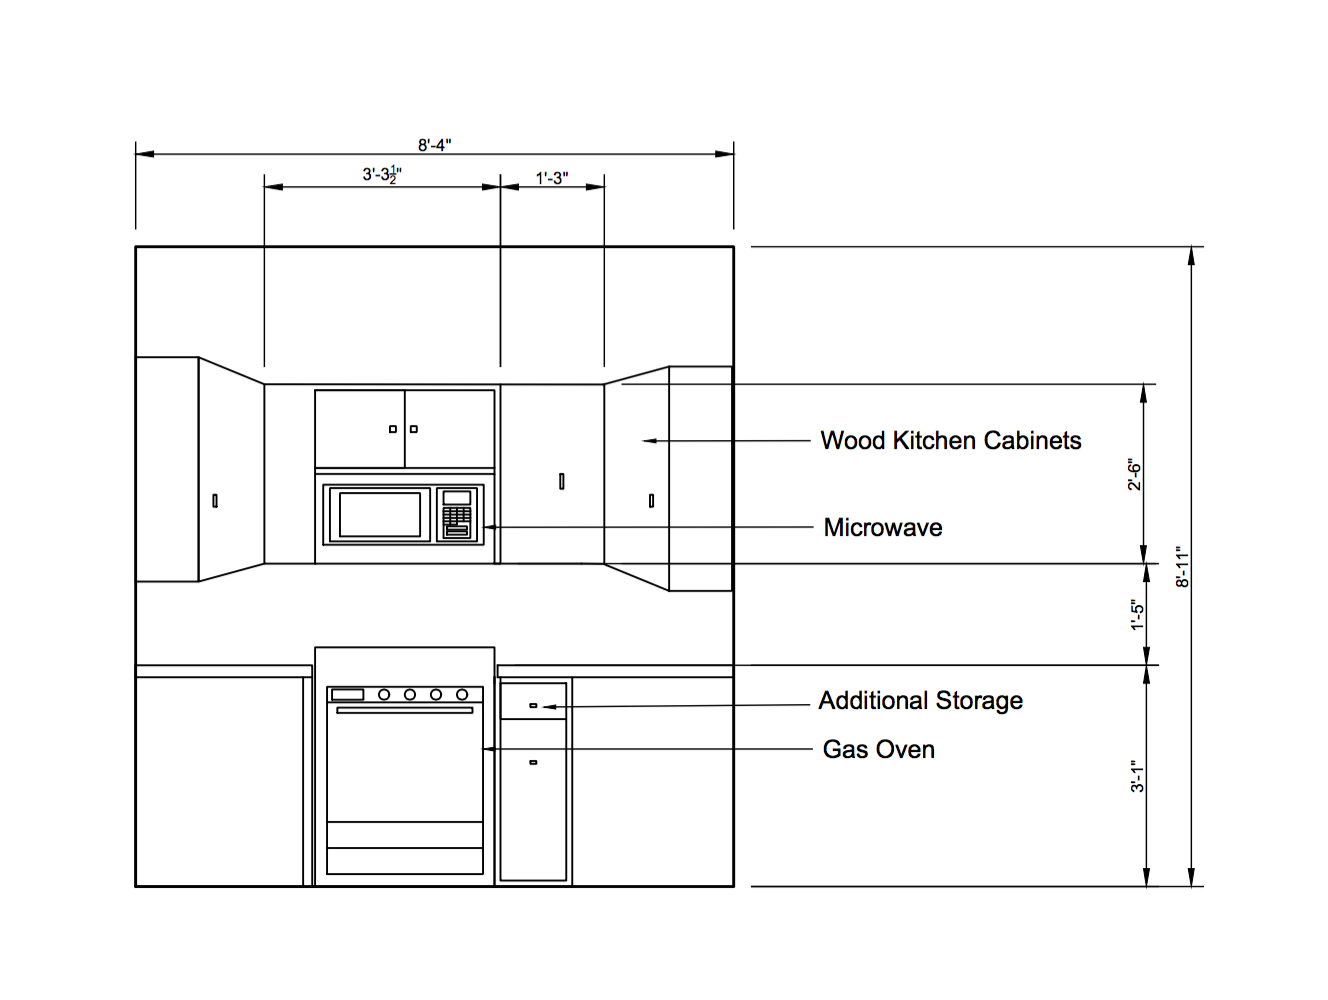 Autocad Drawings Chelsea Emerson